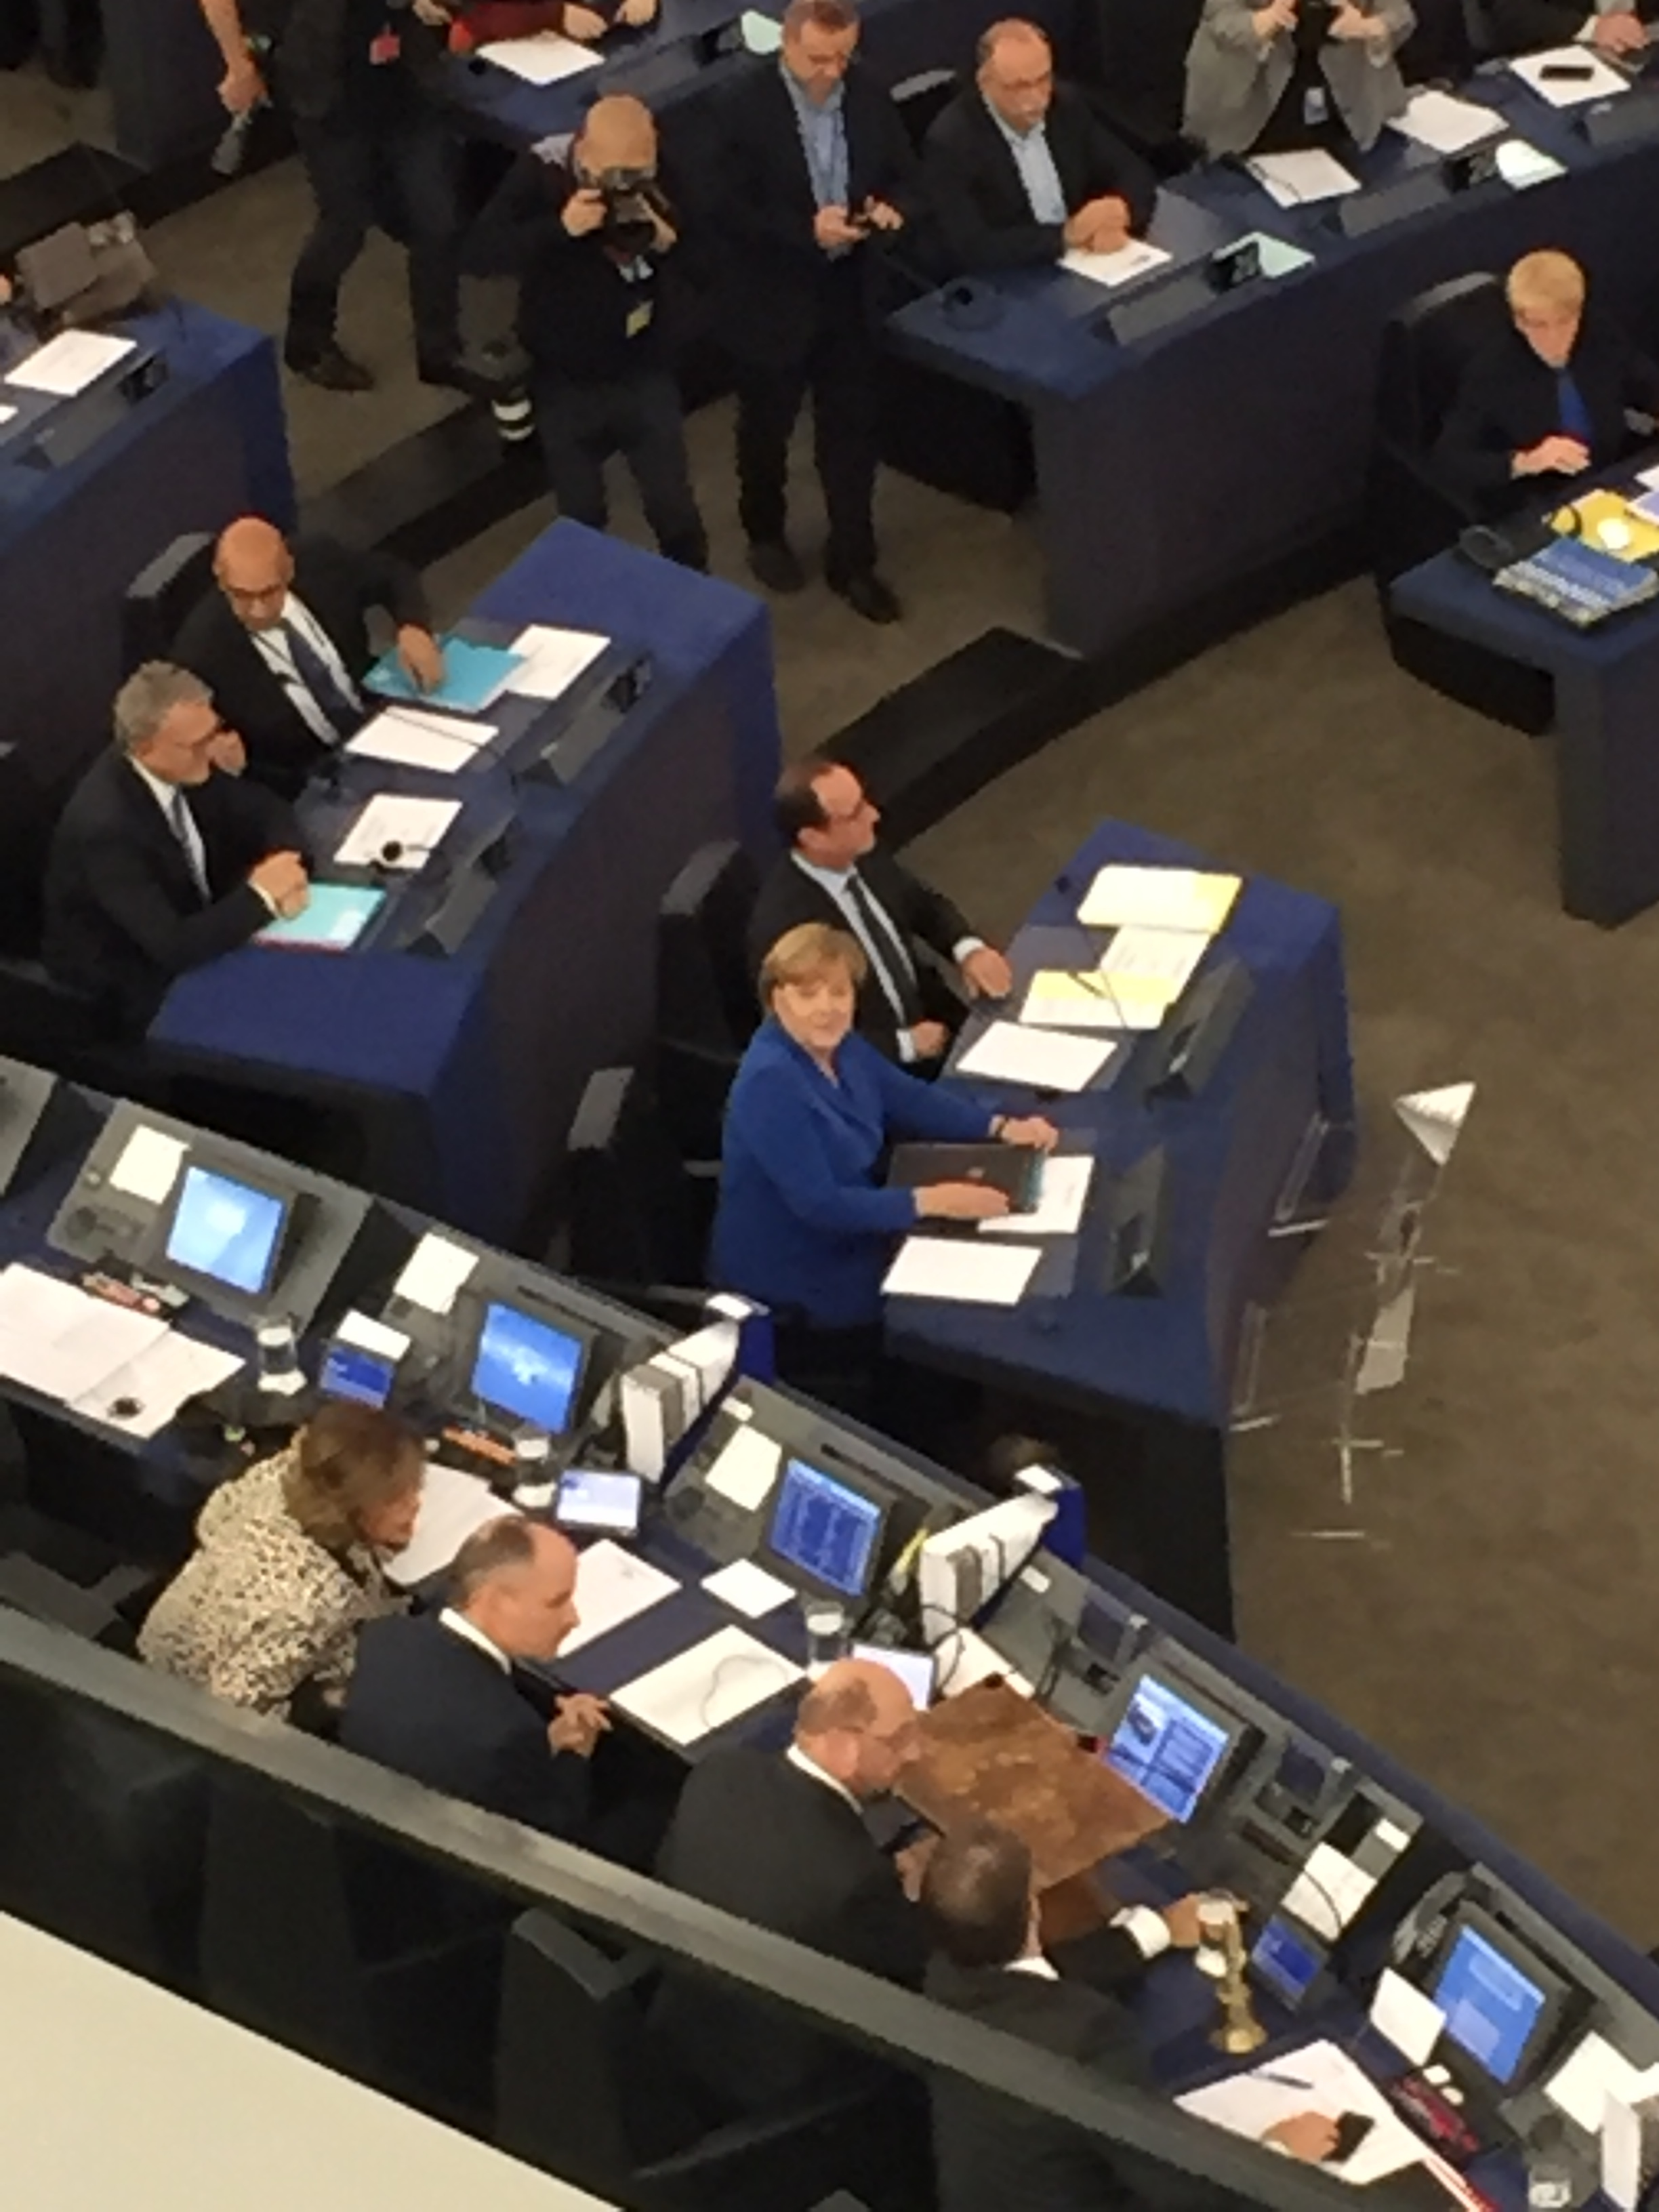 The potato quality picture I took of Chancellor Merkel staring into my soul. Also, François just chilling out, as he is wont to do.